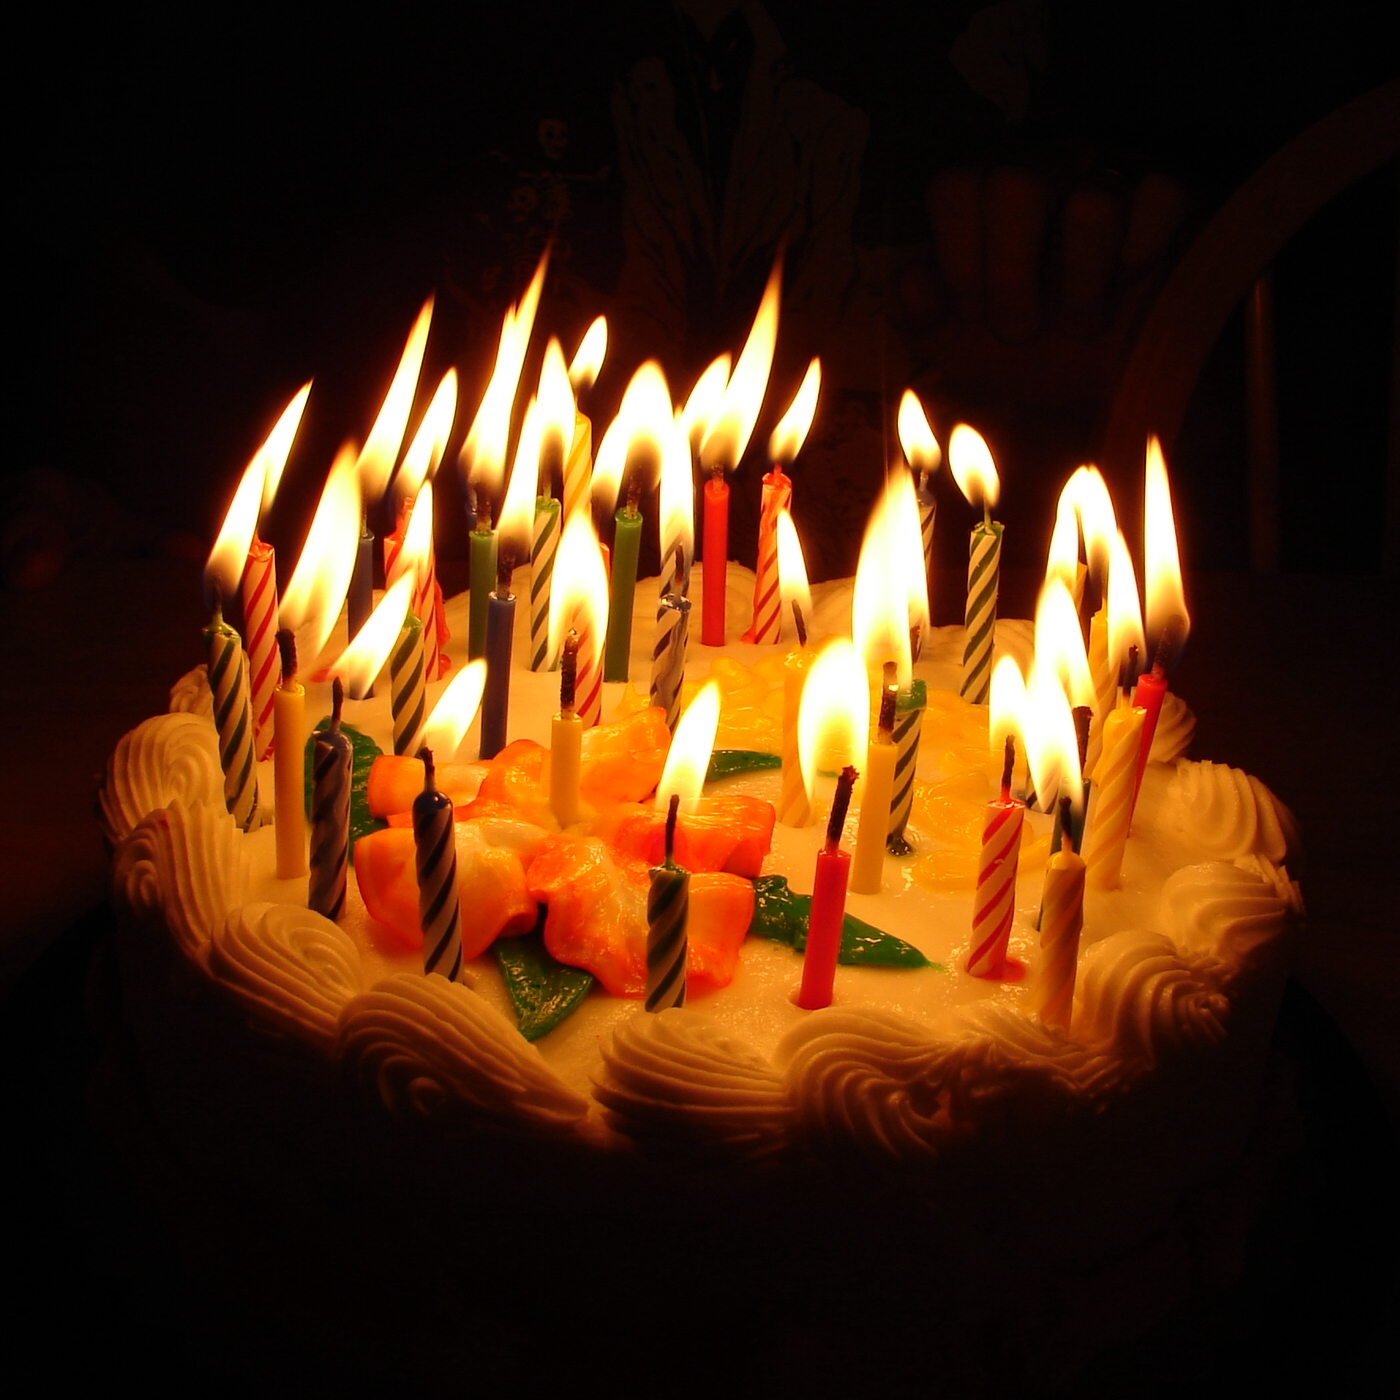 Birthday Cake with Lit Candles